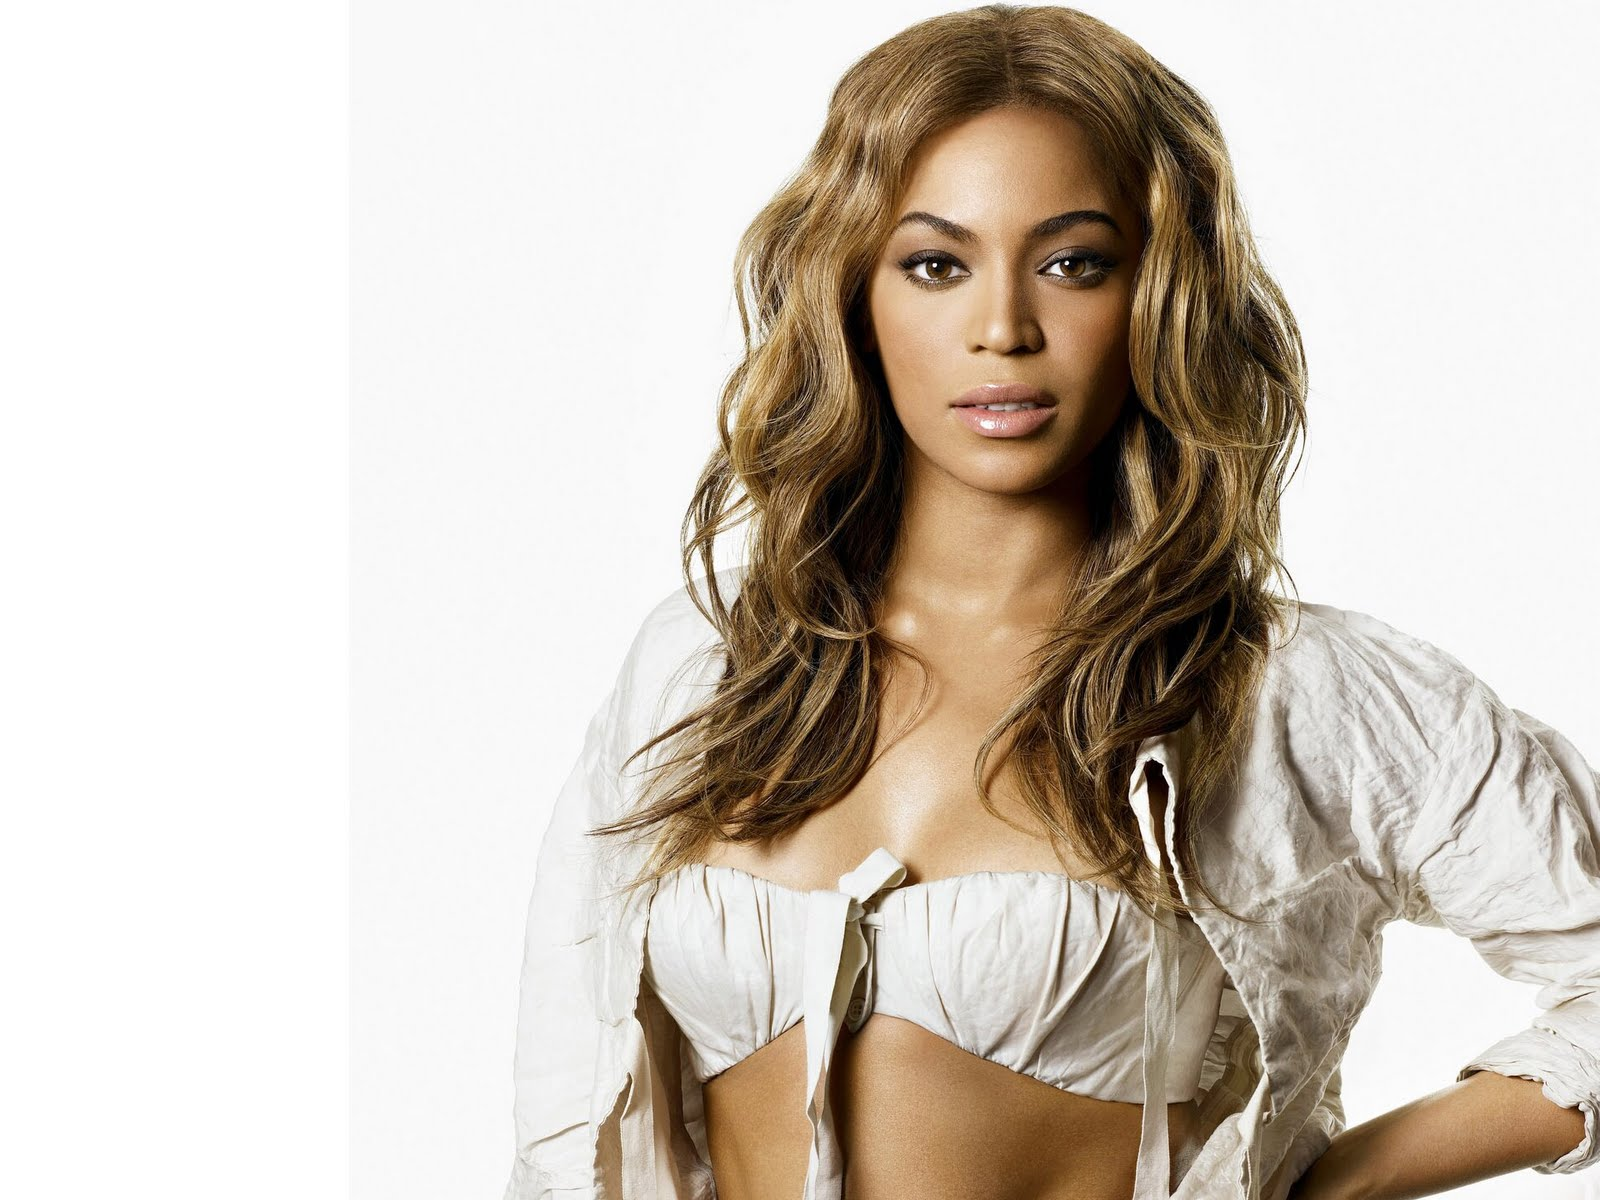 http://1.bp.blogspot.com/-qSO7t24xW98/TmNUrC5V2LI/AAAAAAAABLw/qifavdzBulo/s1600/Beyonce_Knowles_Actress_Free_Download_High_Resolution_HD_HQ_Desktop_Backgrounds_Face_Wallpapers_21013.jpg